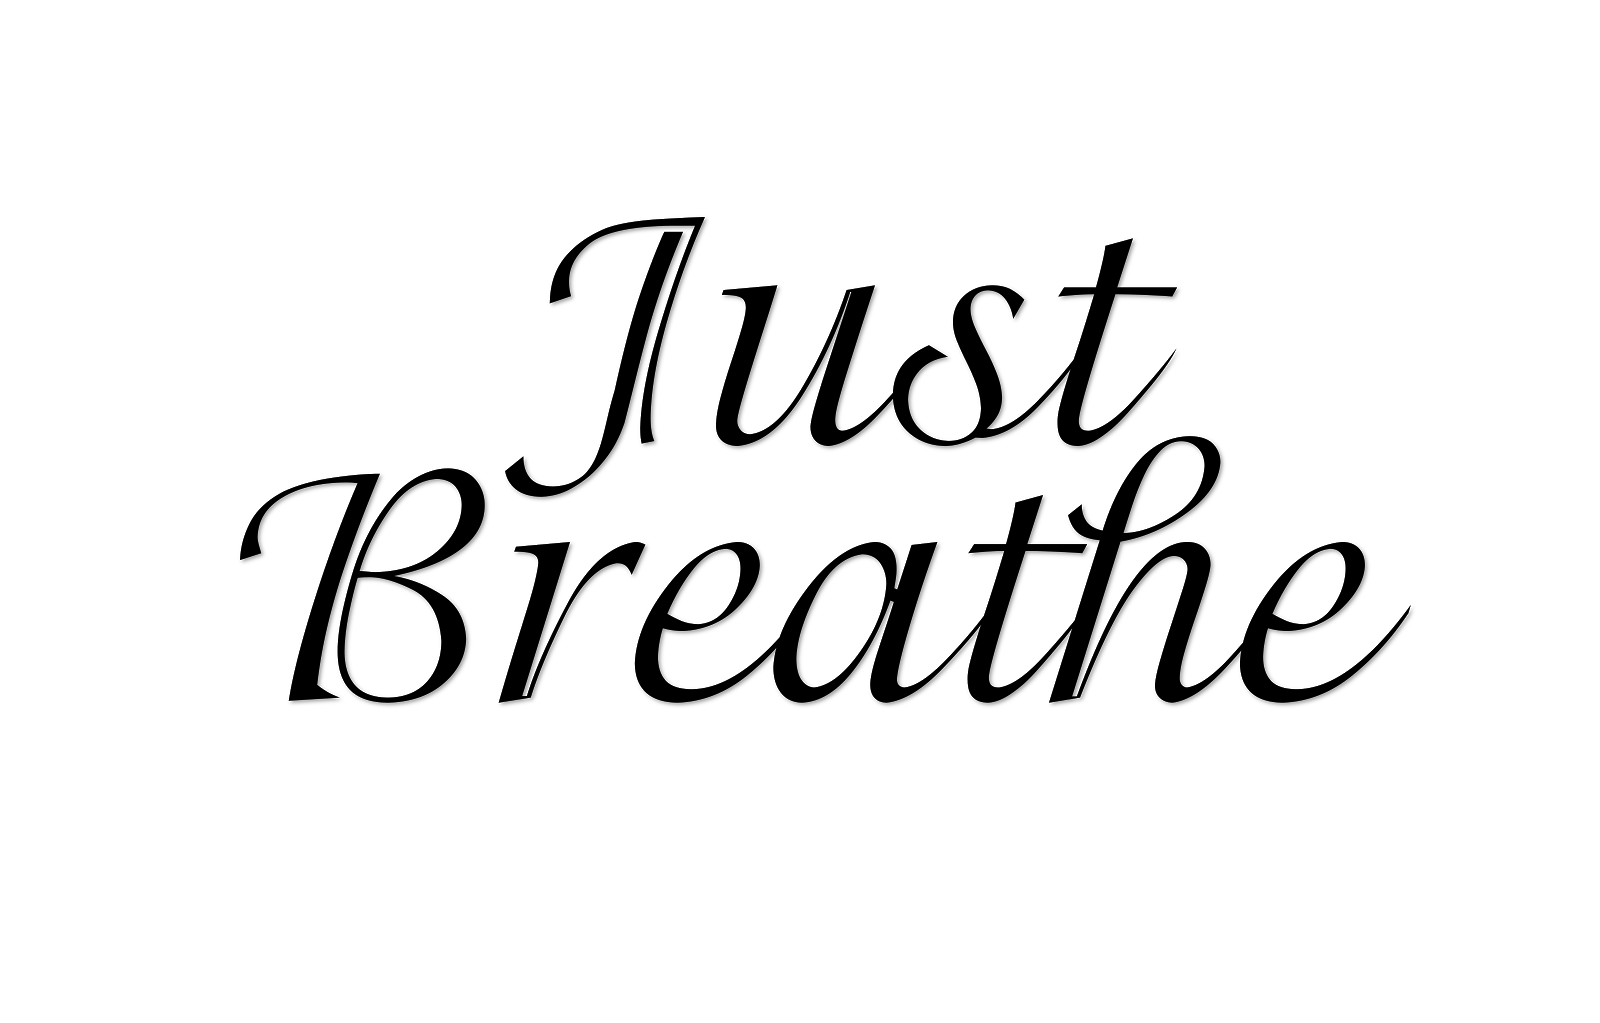 Breathe Out Clipart